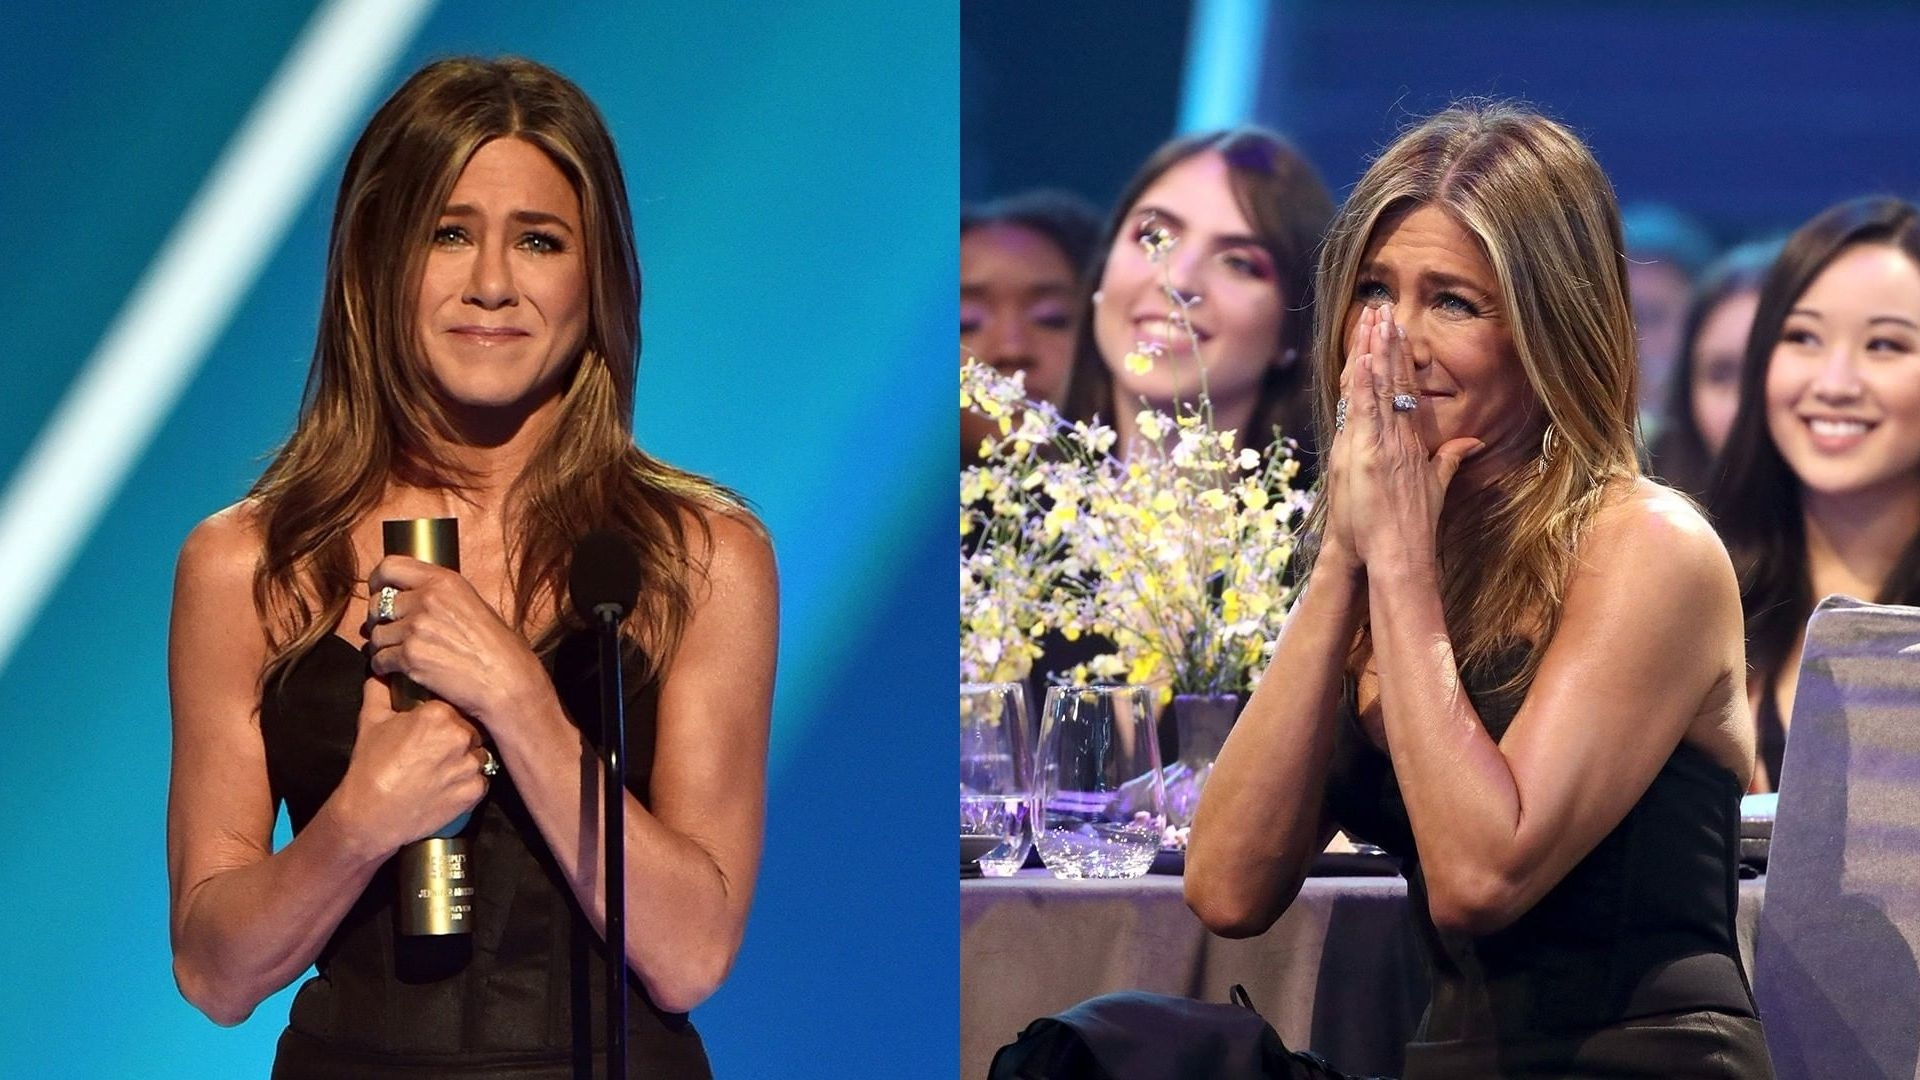 Jennifer Aniston's Speech At The 2019 People's Choice Awards Brought Everyone To Tears